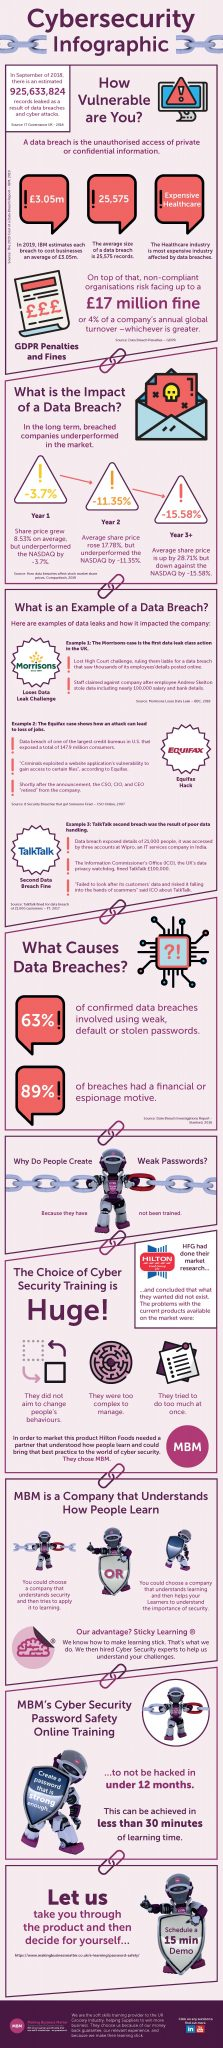 cybersecurity infographic by mbm discusses data breach costs and how to train your organisation to prevent these.